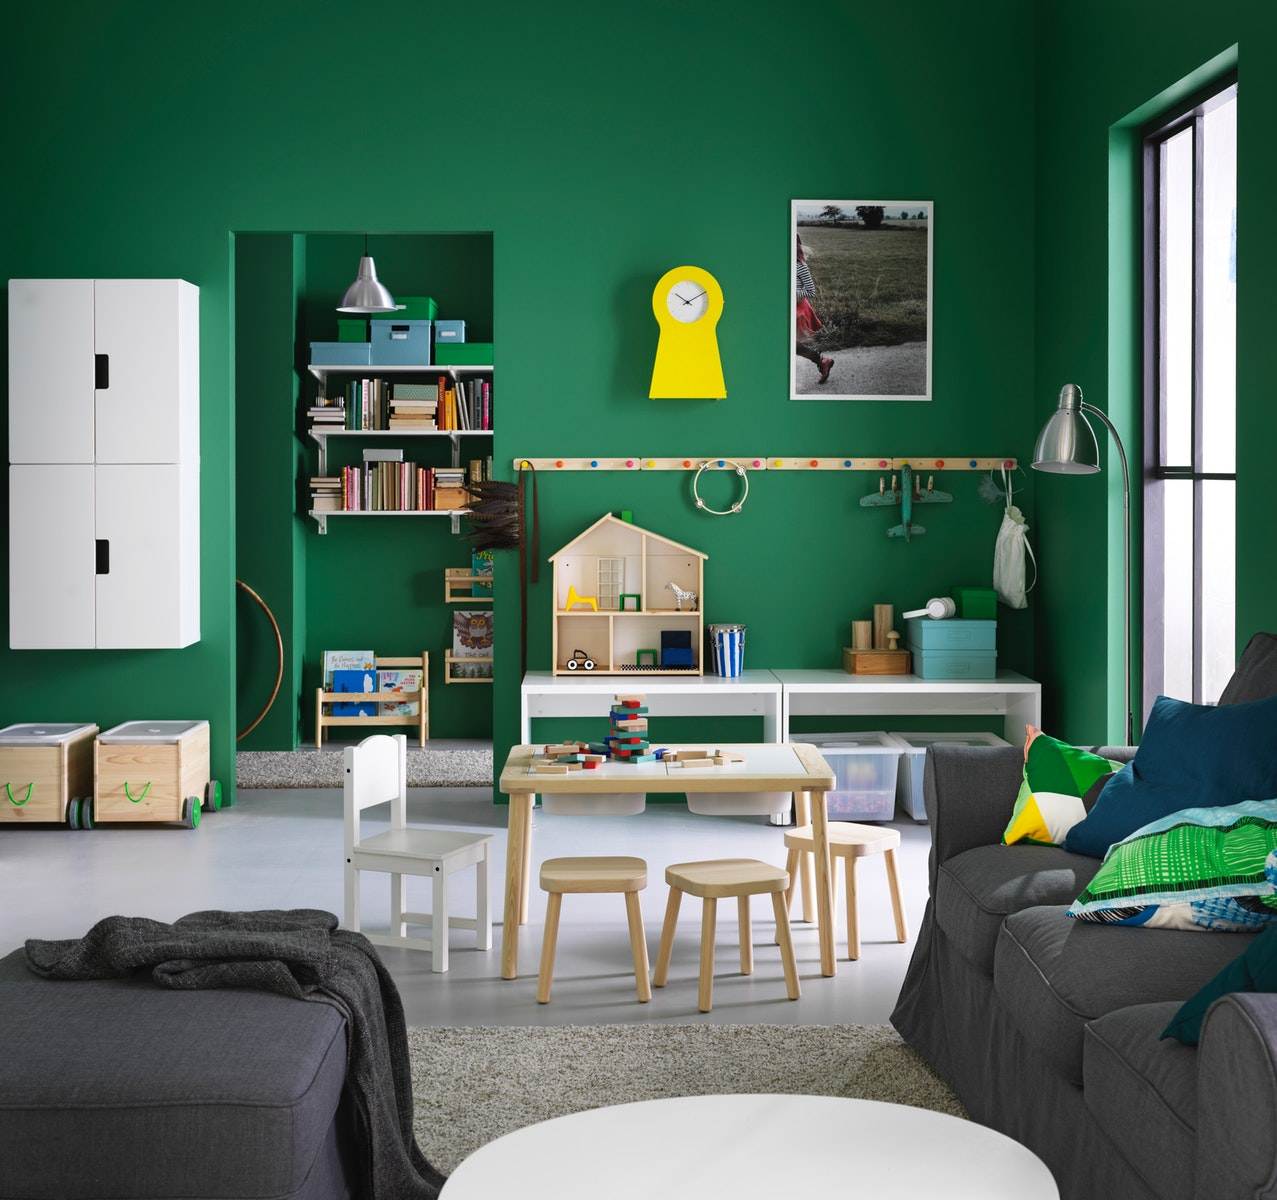 Make space for play in living room